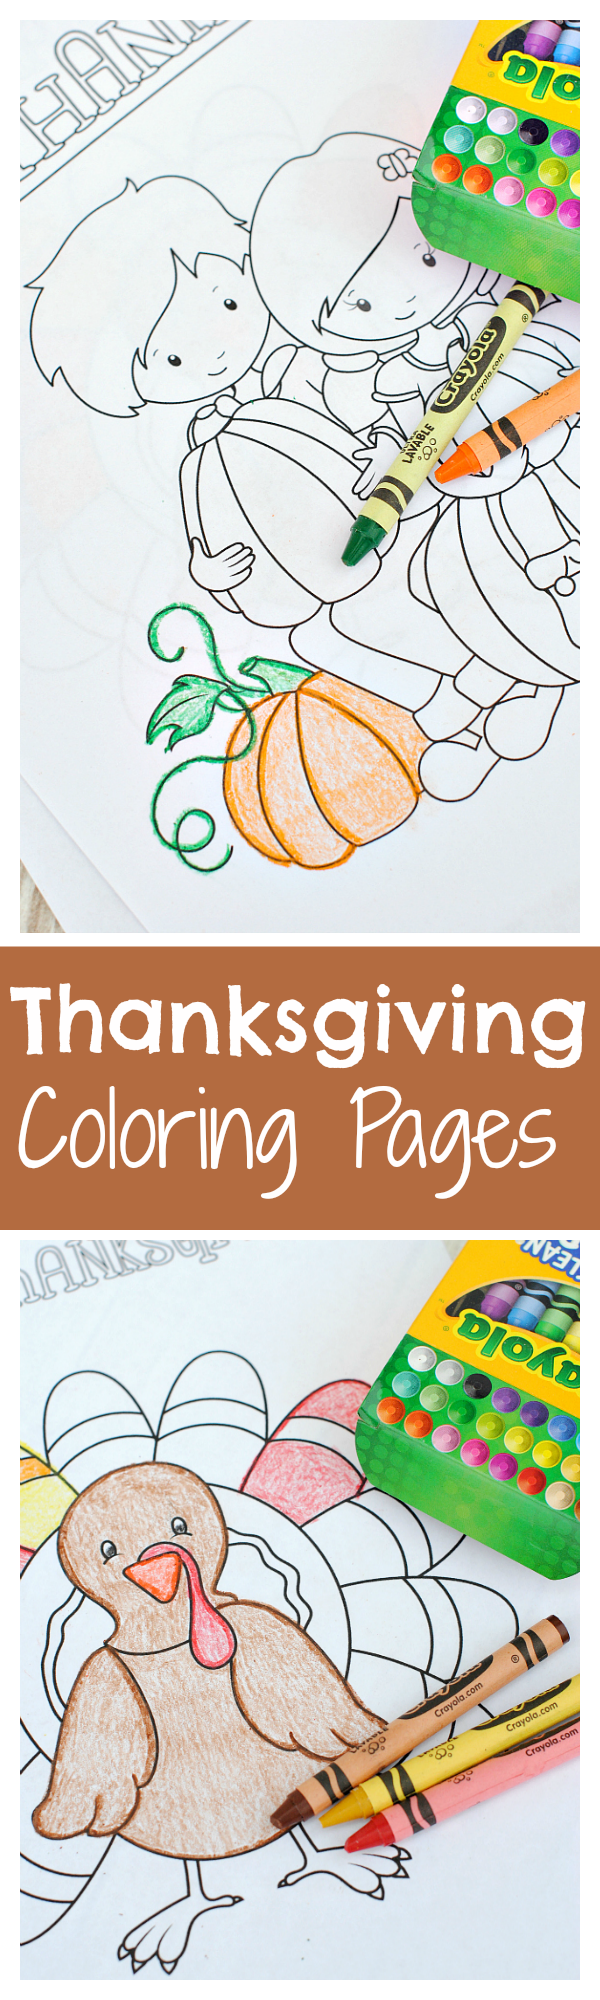 Free Thanksgiving Coloring Pages | Free printable, Thanksgiving and Free